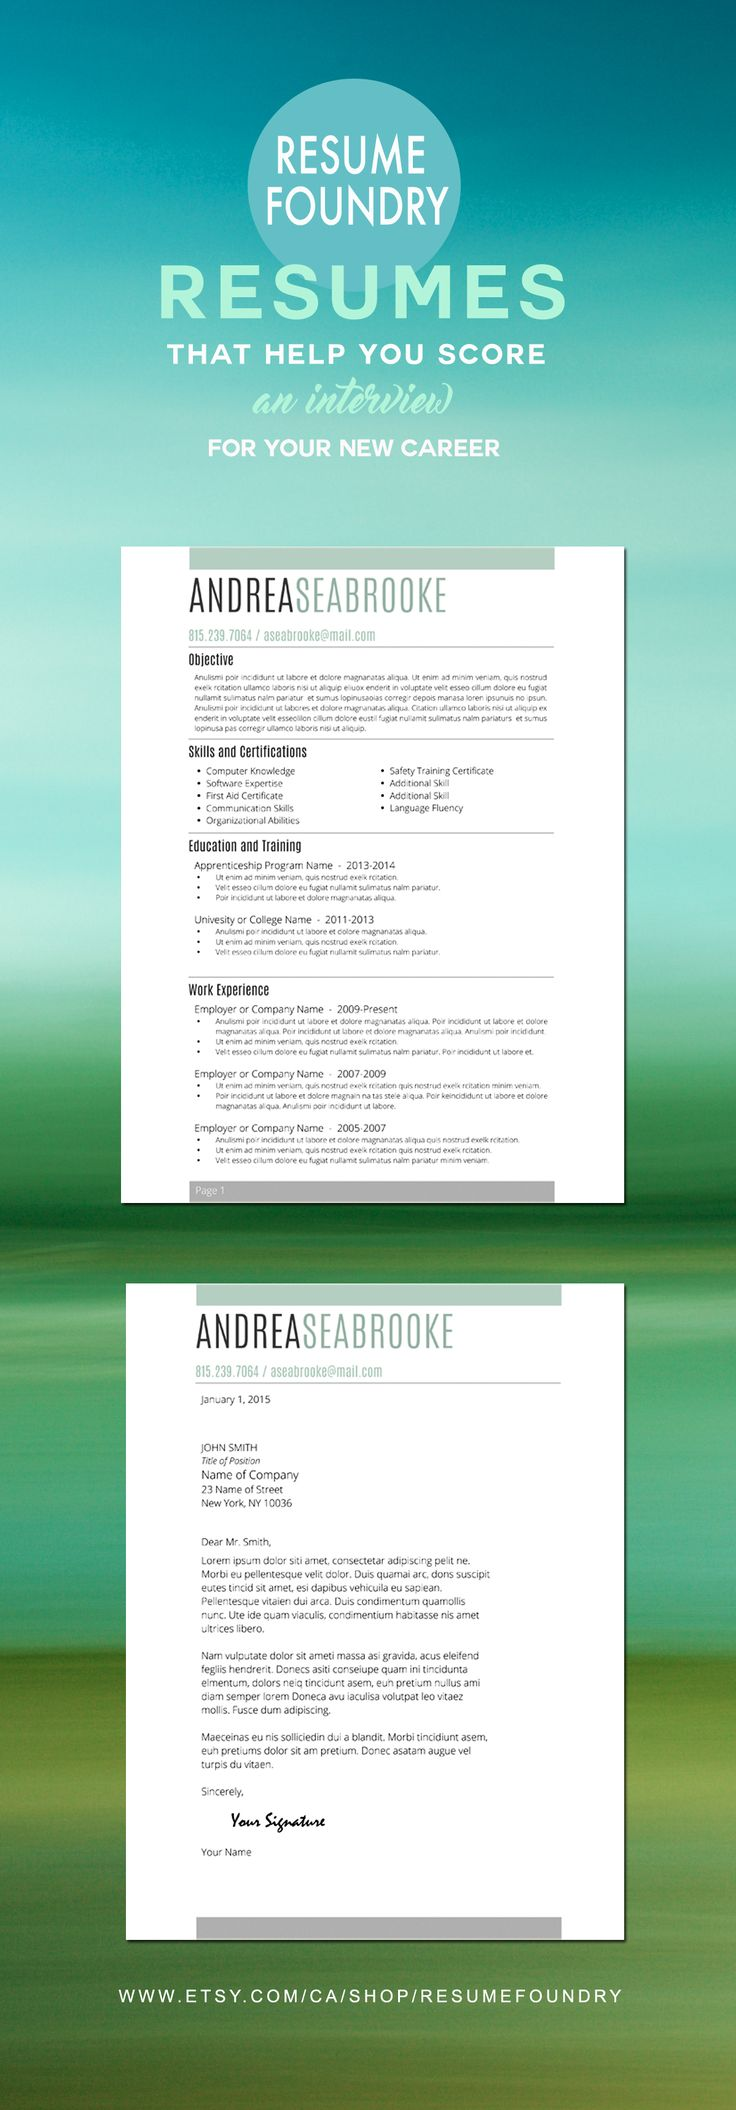 Best Free Resume Templates Images On   Resume Ideas